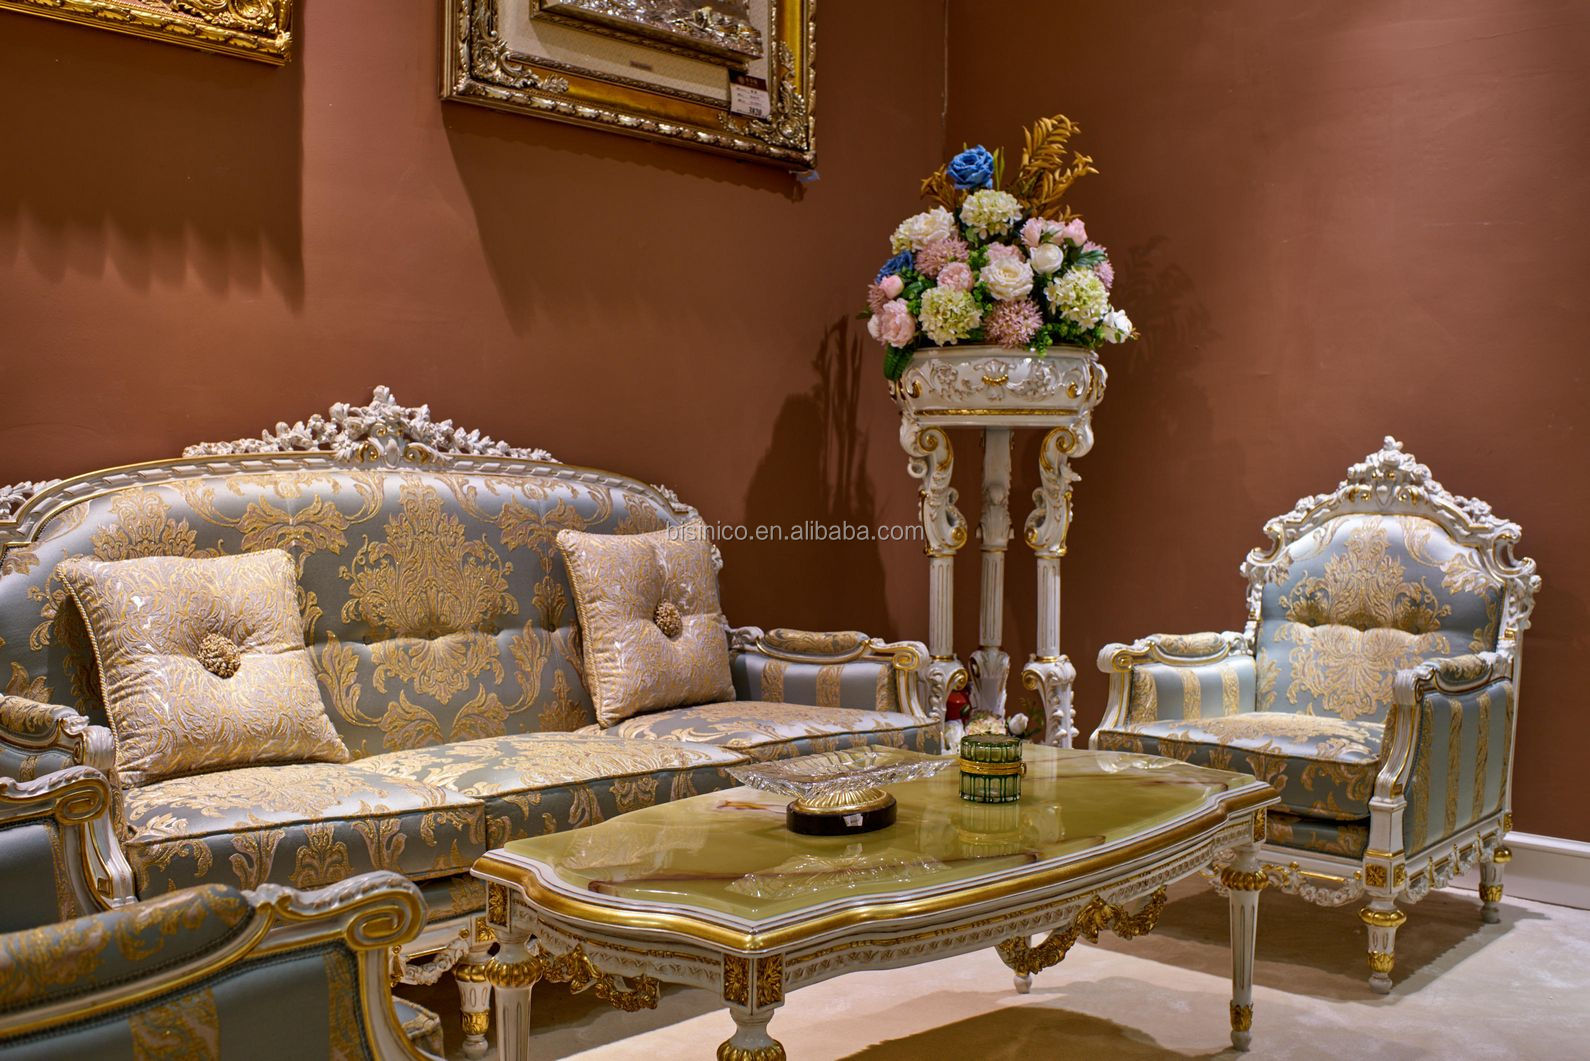 Royal Floral Design Living Room Furniture/ Luxurious Gold Accents Exquisite Fabric Sectional Sofa Set/ European Home Furniture